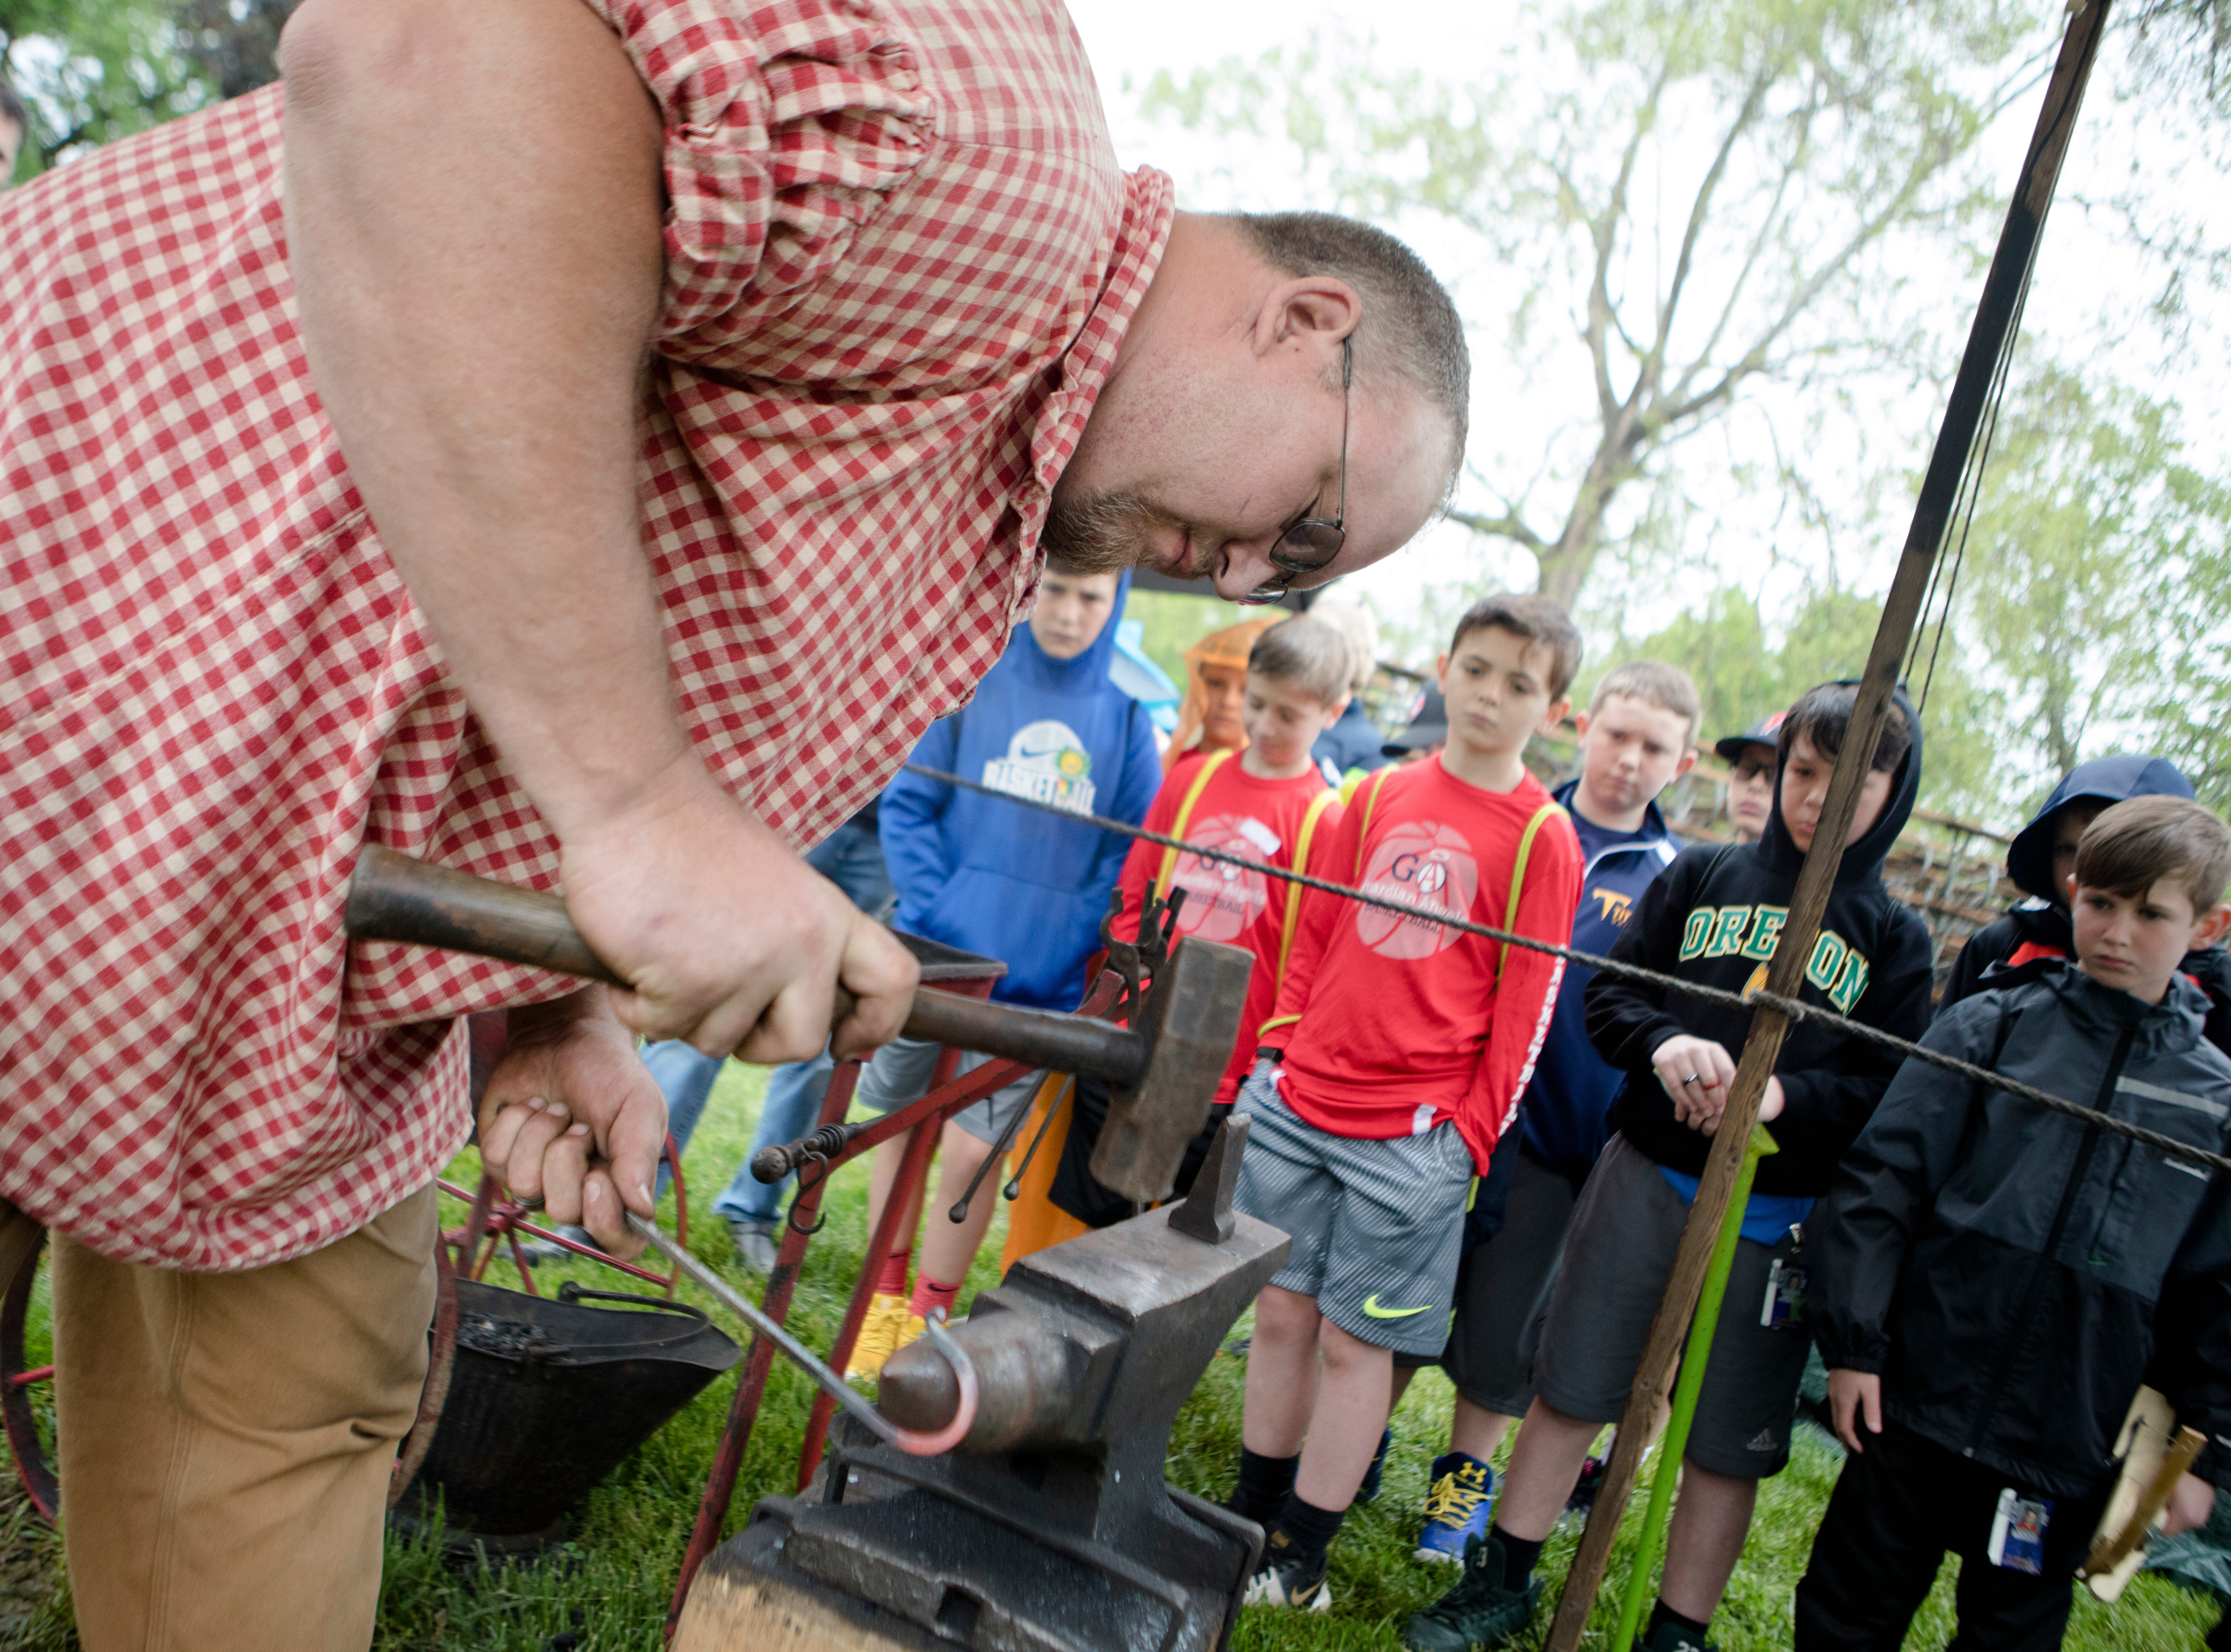 Dustin Baker, of Tipp City, teaches onlookers how to creates an S tie with hand tools during the 50th annual Appalachian Festival on Friday, May 10, 2019, At Coney Island in Cincinnati.